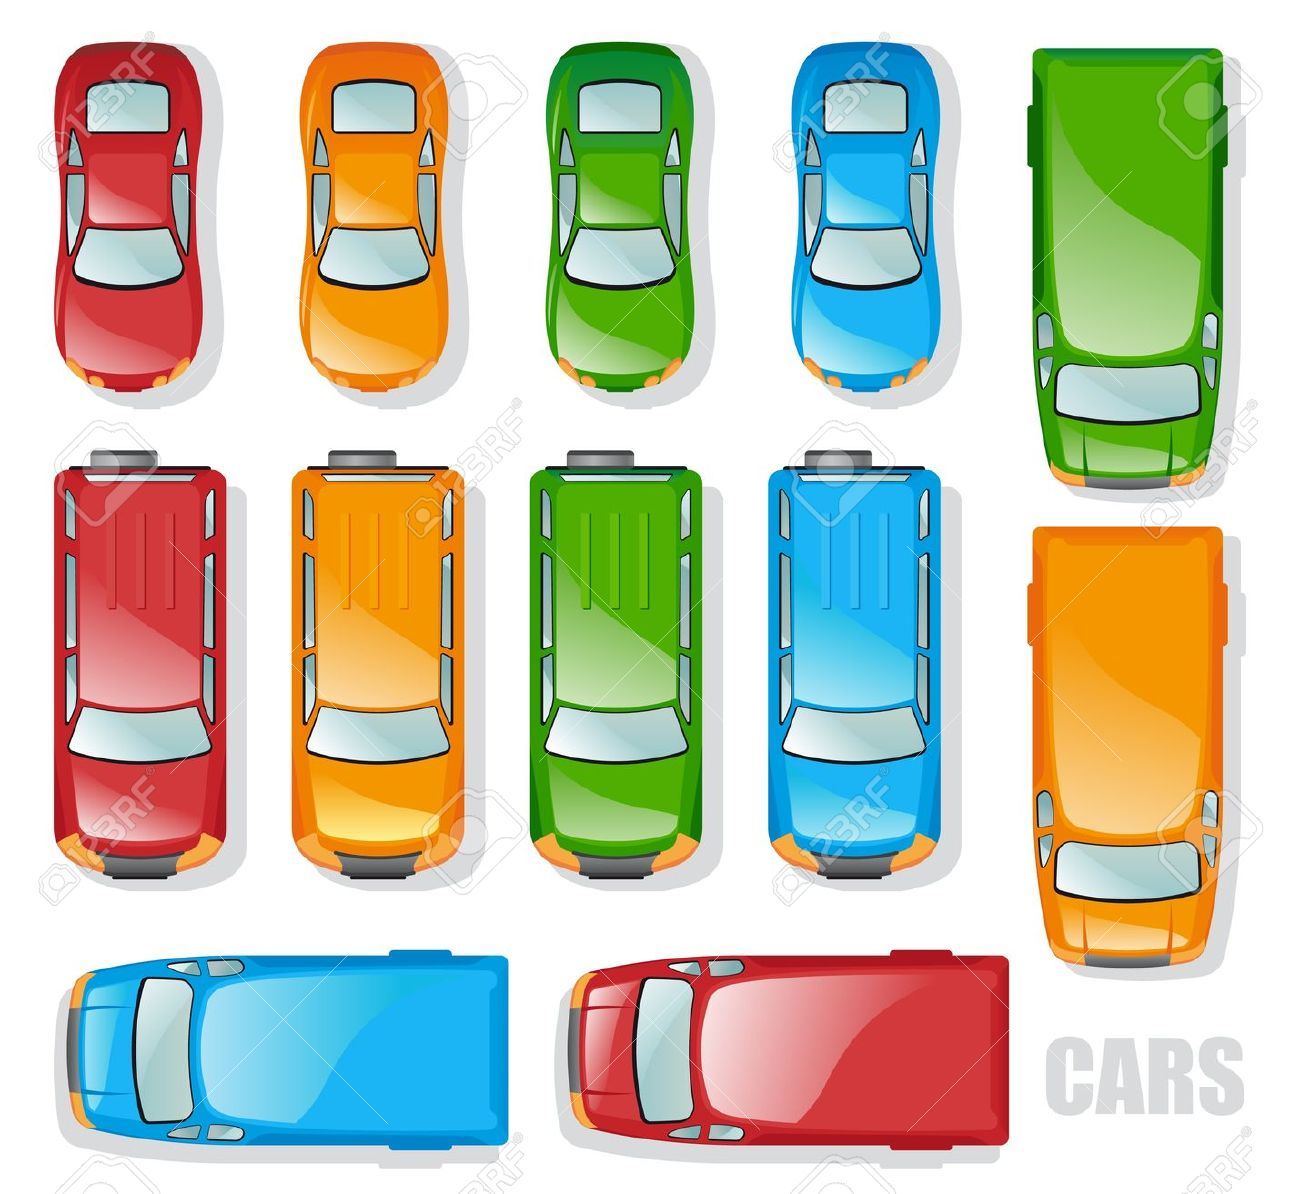 Auto von oben clipart clip art royalty free stock Cars And Minibuses - The Top View Royalty Free Cliparts, Vectors ... clip art royalty free stock